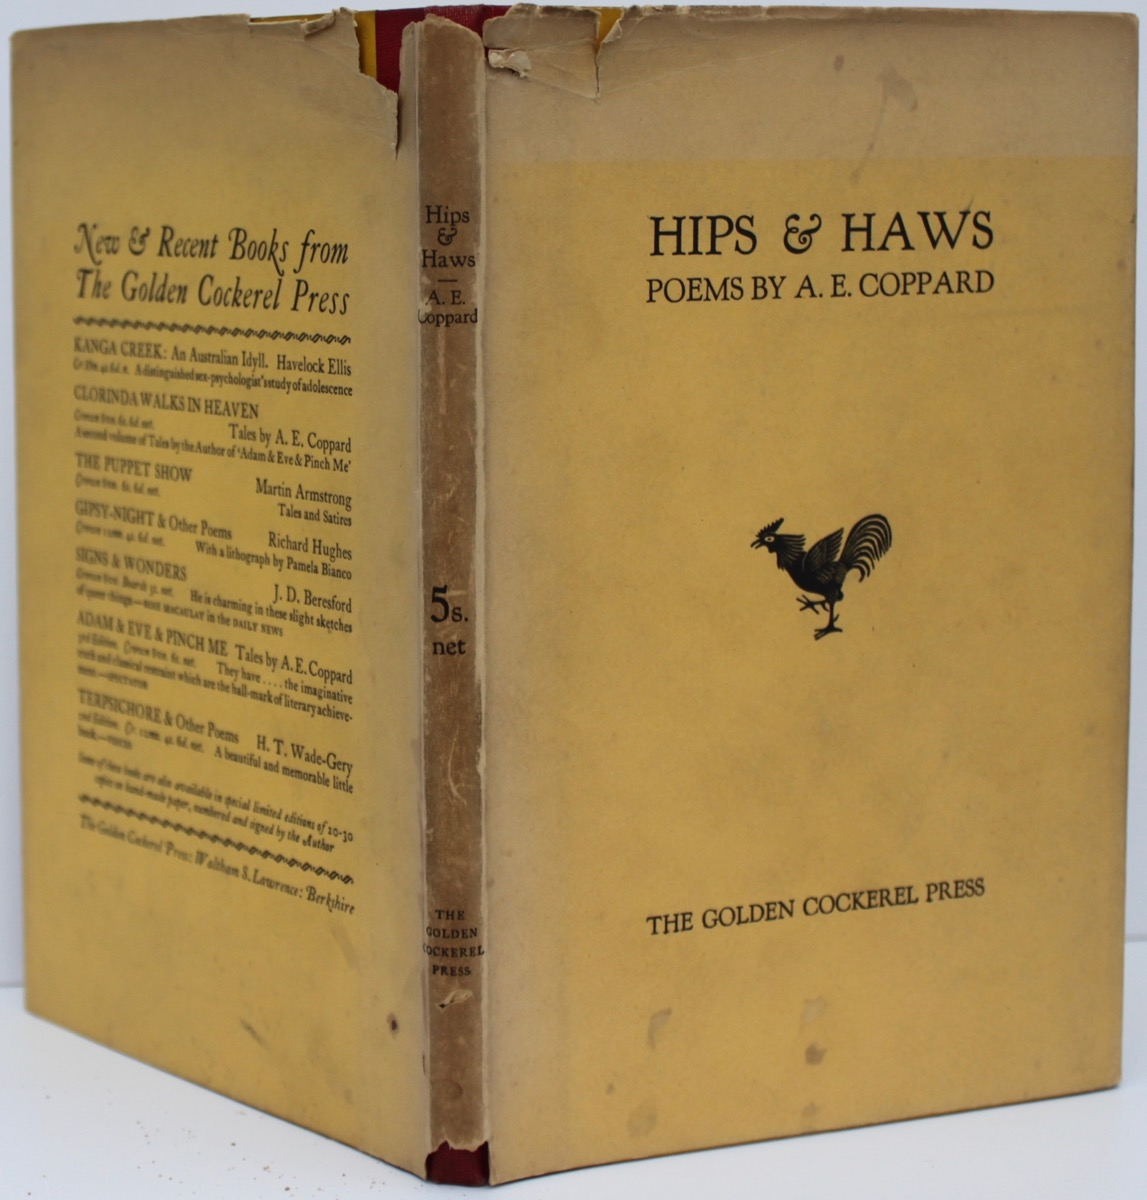 Image for Hips & Haws, poems.